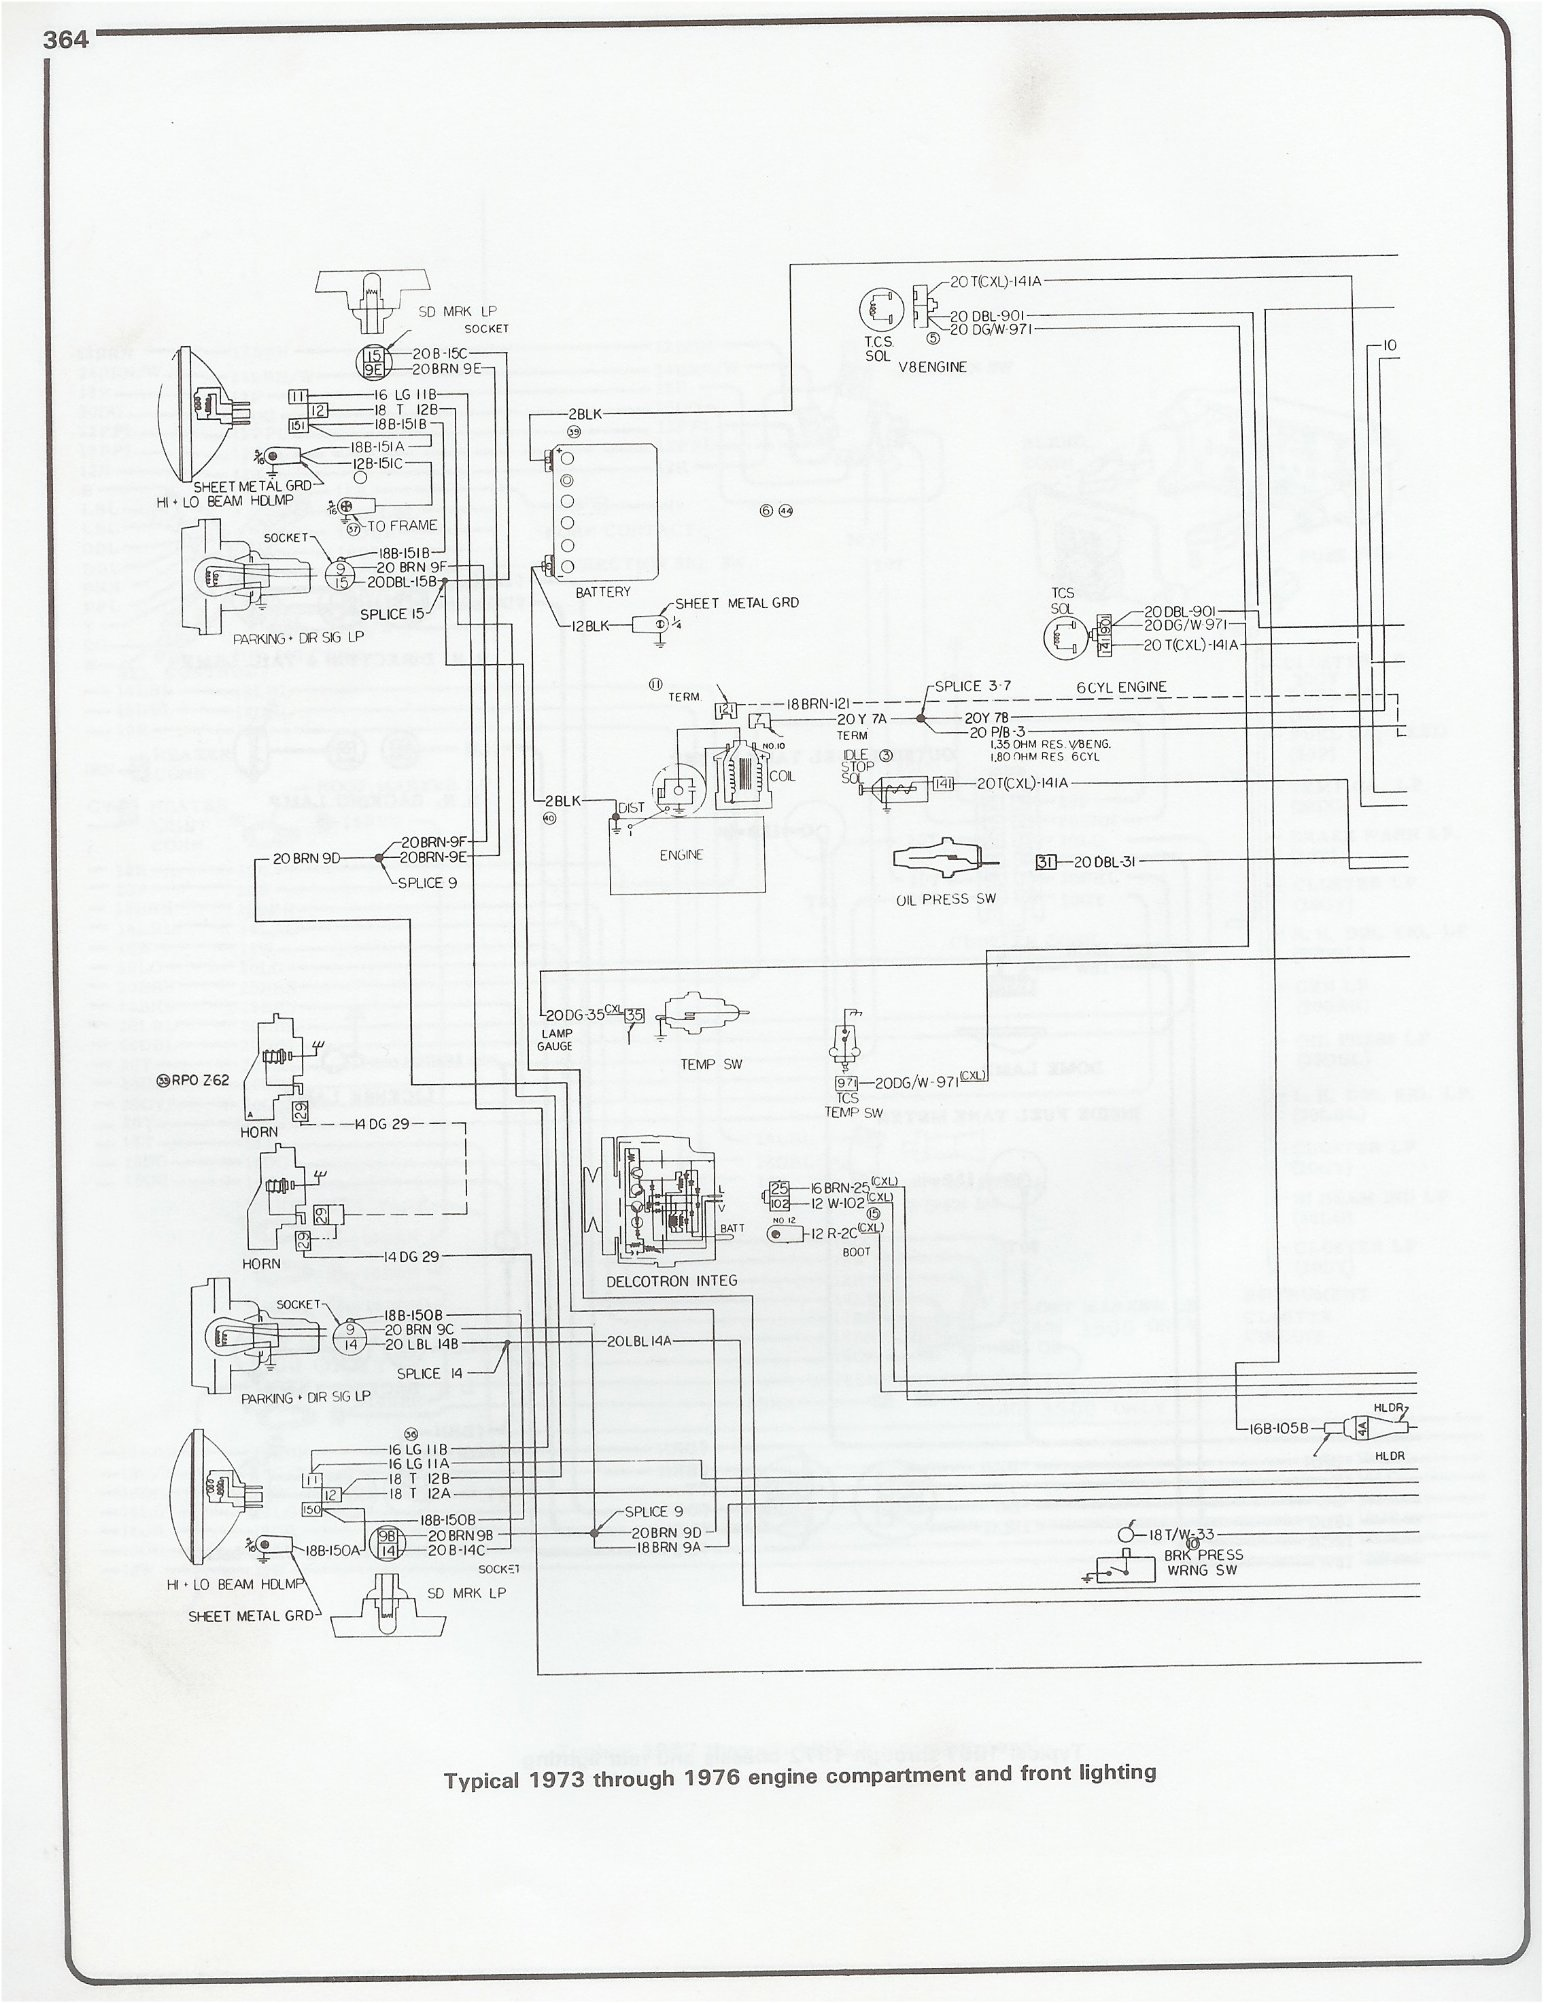 73 76_eng_frt_light complete 73 87 wiring diagrams 1989 Chevy 1500 Wiring Diagram at gsmx.co